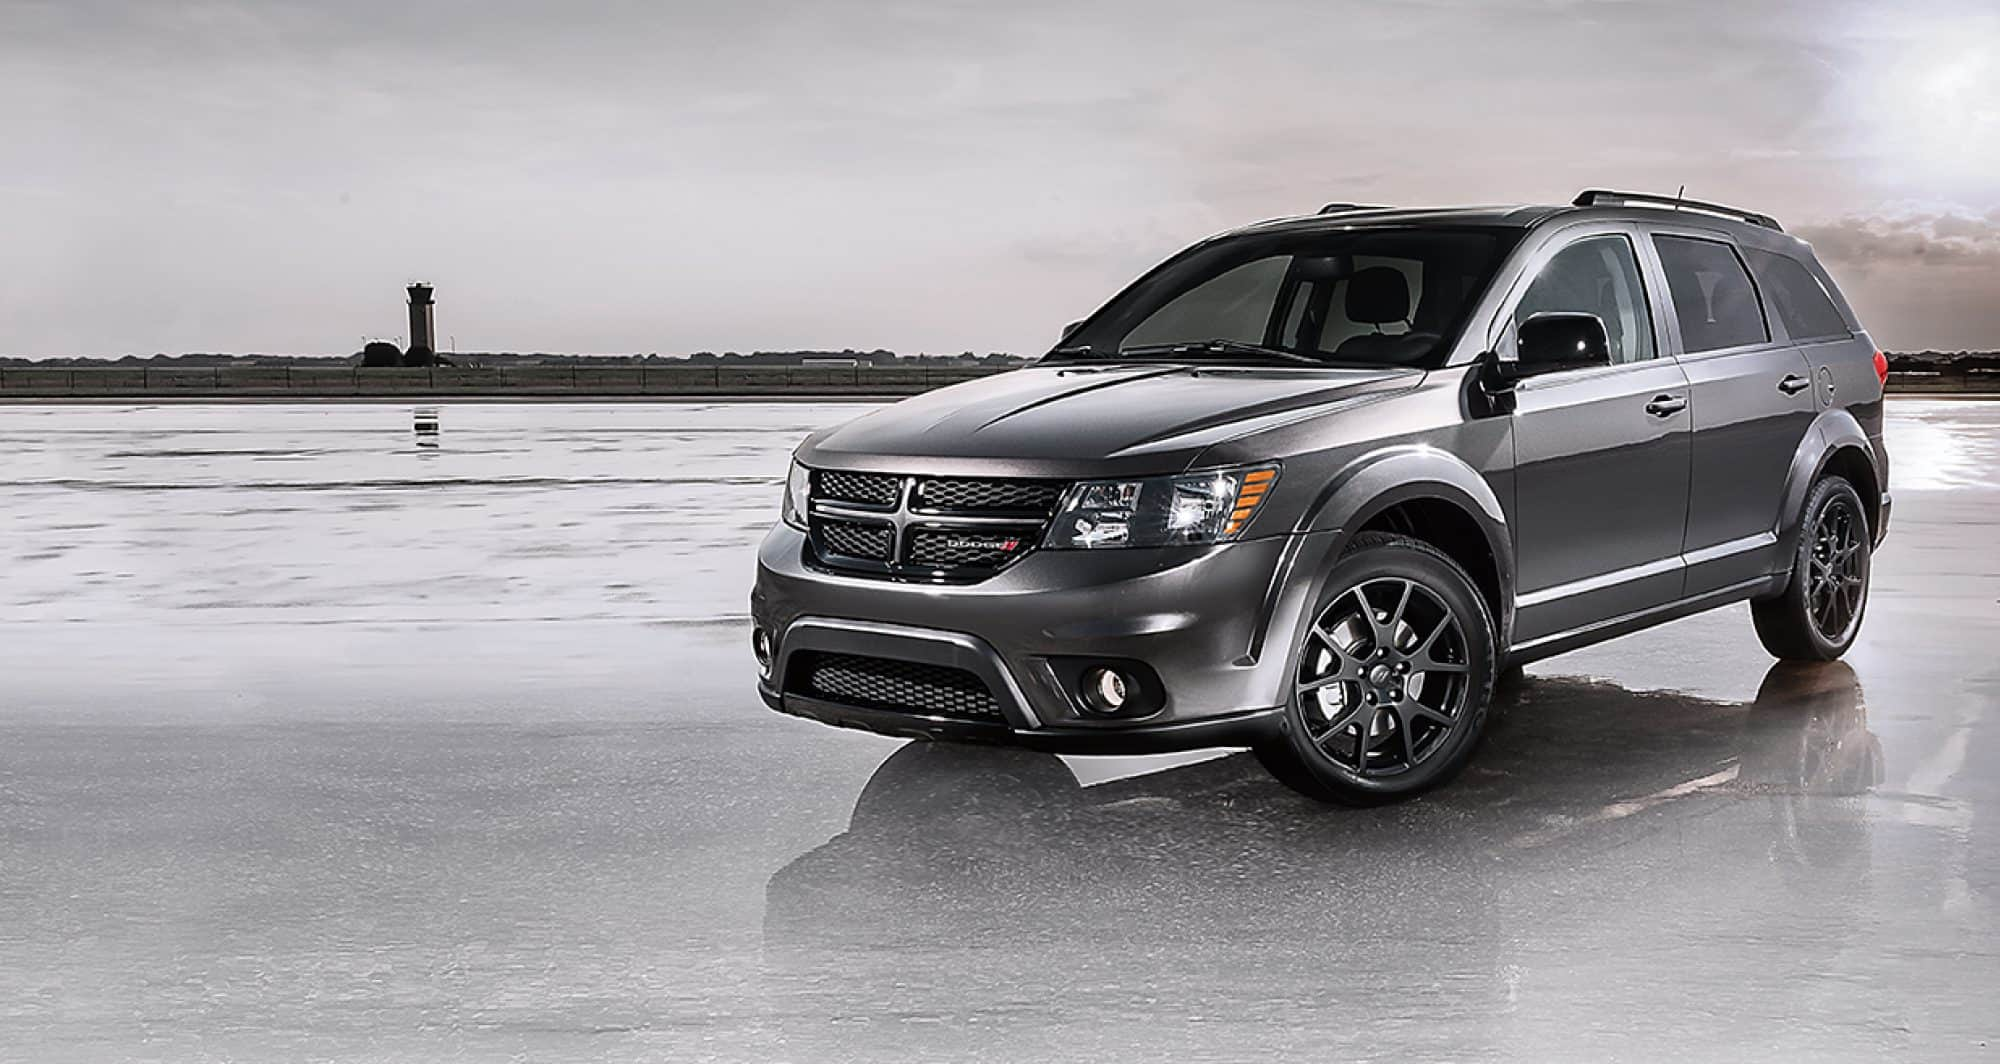 new 2018 dodge journey for sale near philadelphia pa norristown pa lease or buy a new 2018. Black Bedroom Furniture Sets. Home Design Ideas